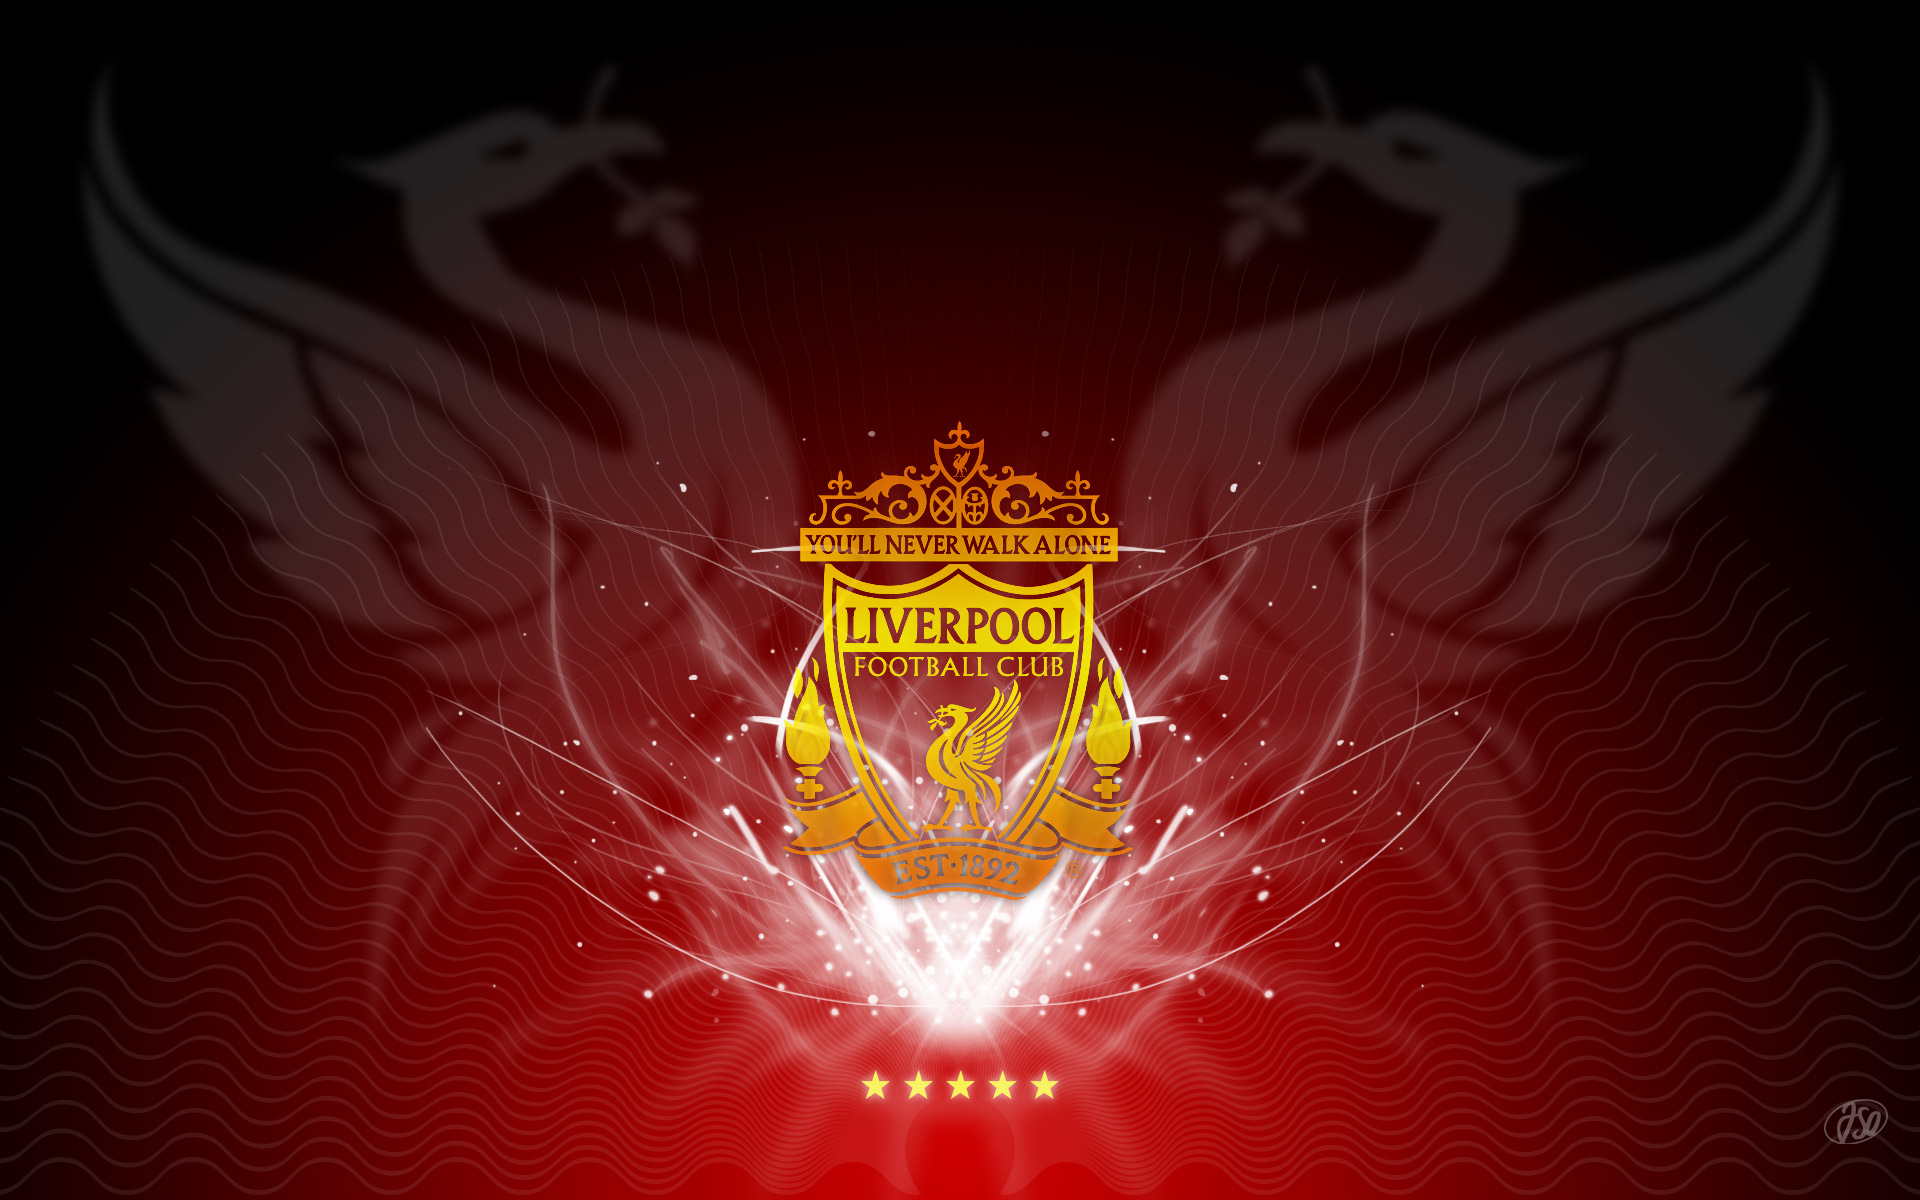 Awesome liverpool fc wallpaper that will energize any desktop